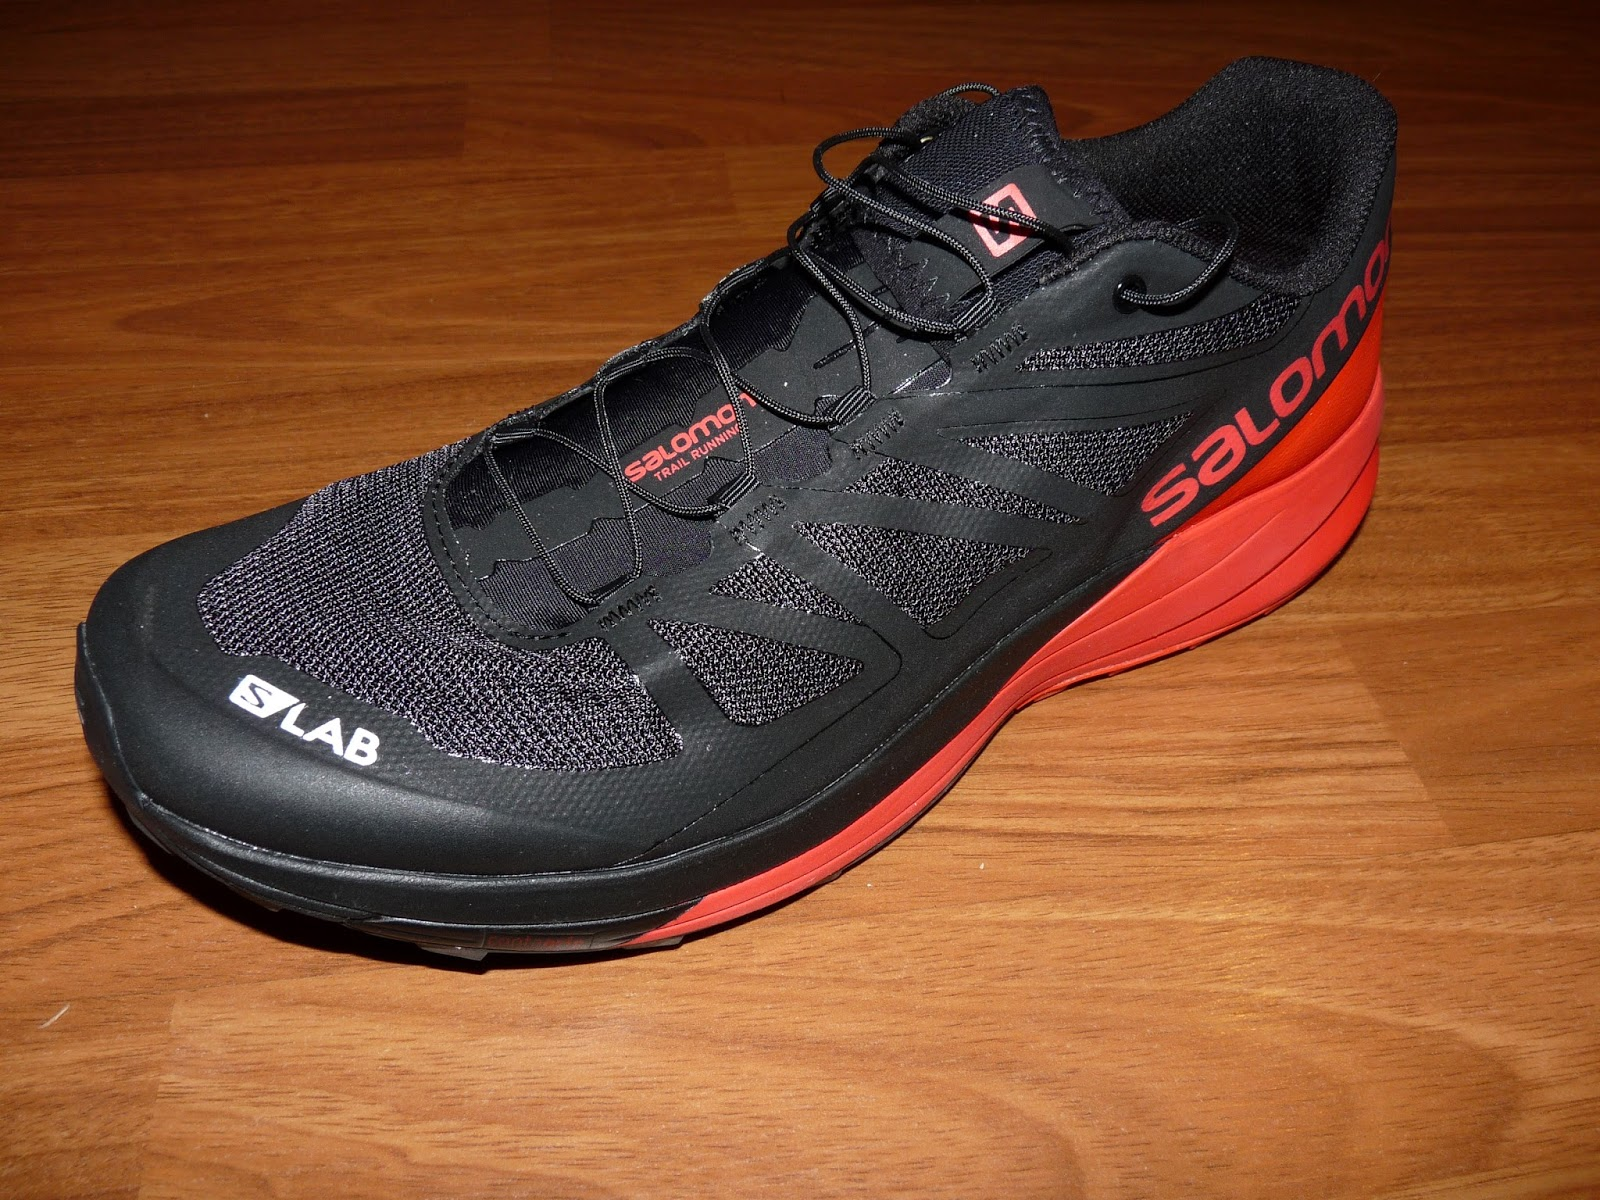 Sense Trail RunSalomon Road S Lab Review Ultra Race c3jq54ALSR